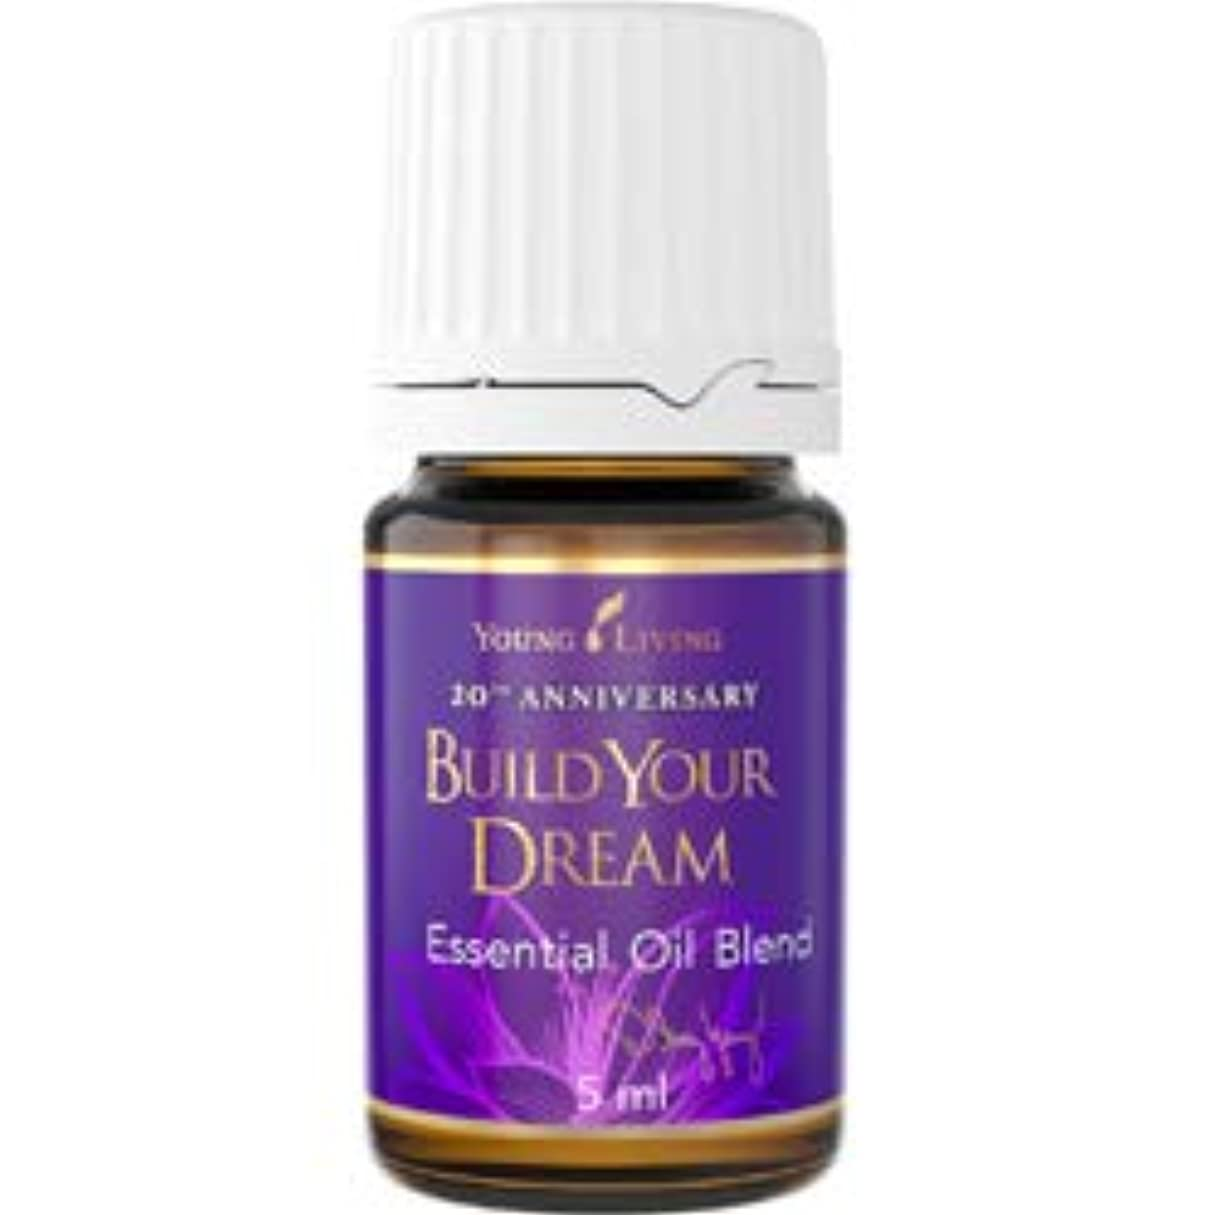 Dream™エッセンシャルオイルを作りましょう ヤングリビングエッセンシャルオイルマレーシア5ml Build Your Dream™ Essential Oil 5ml by Young Living Essential...